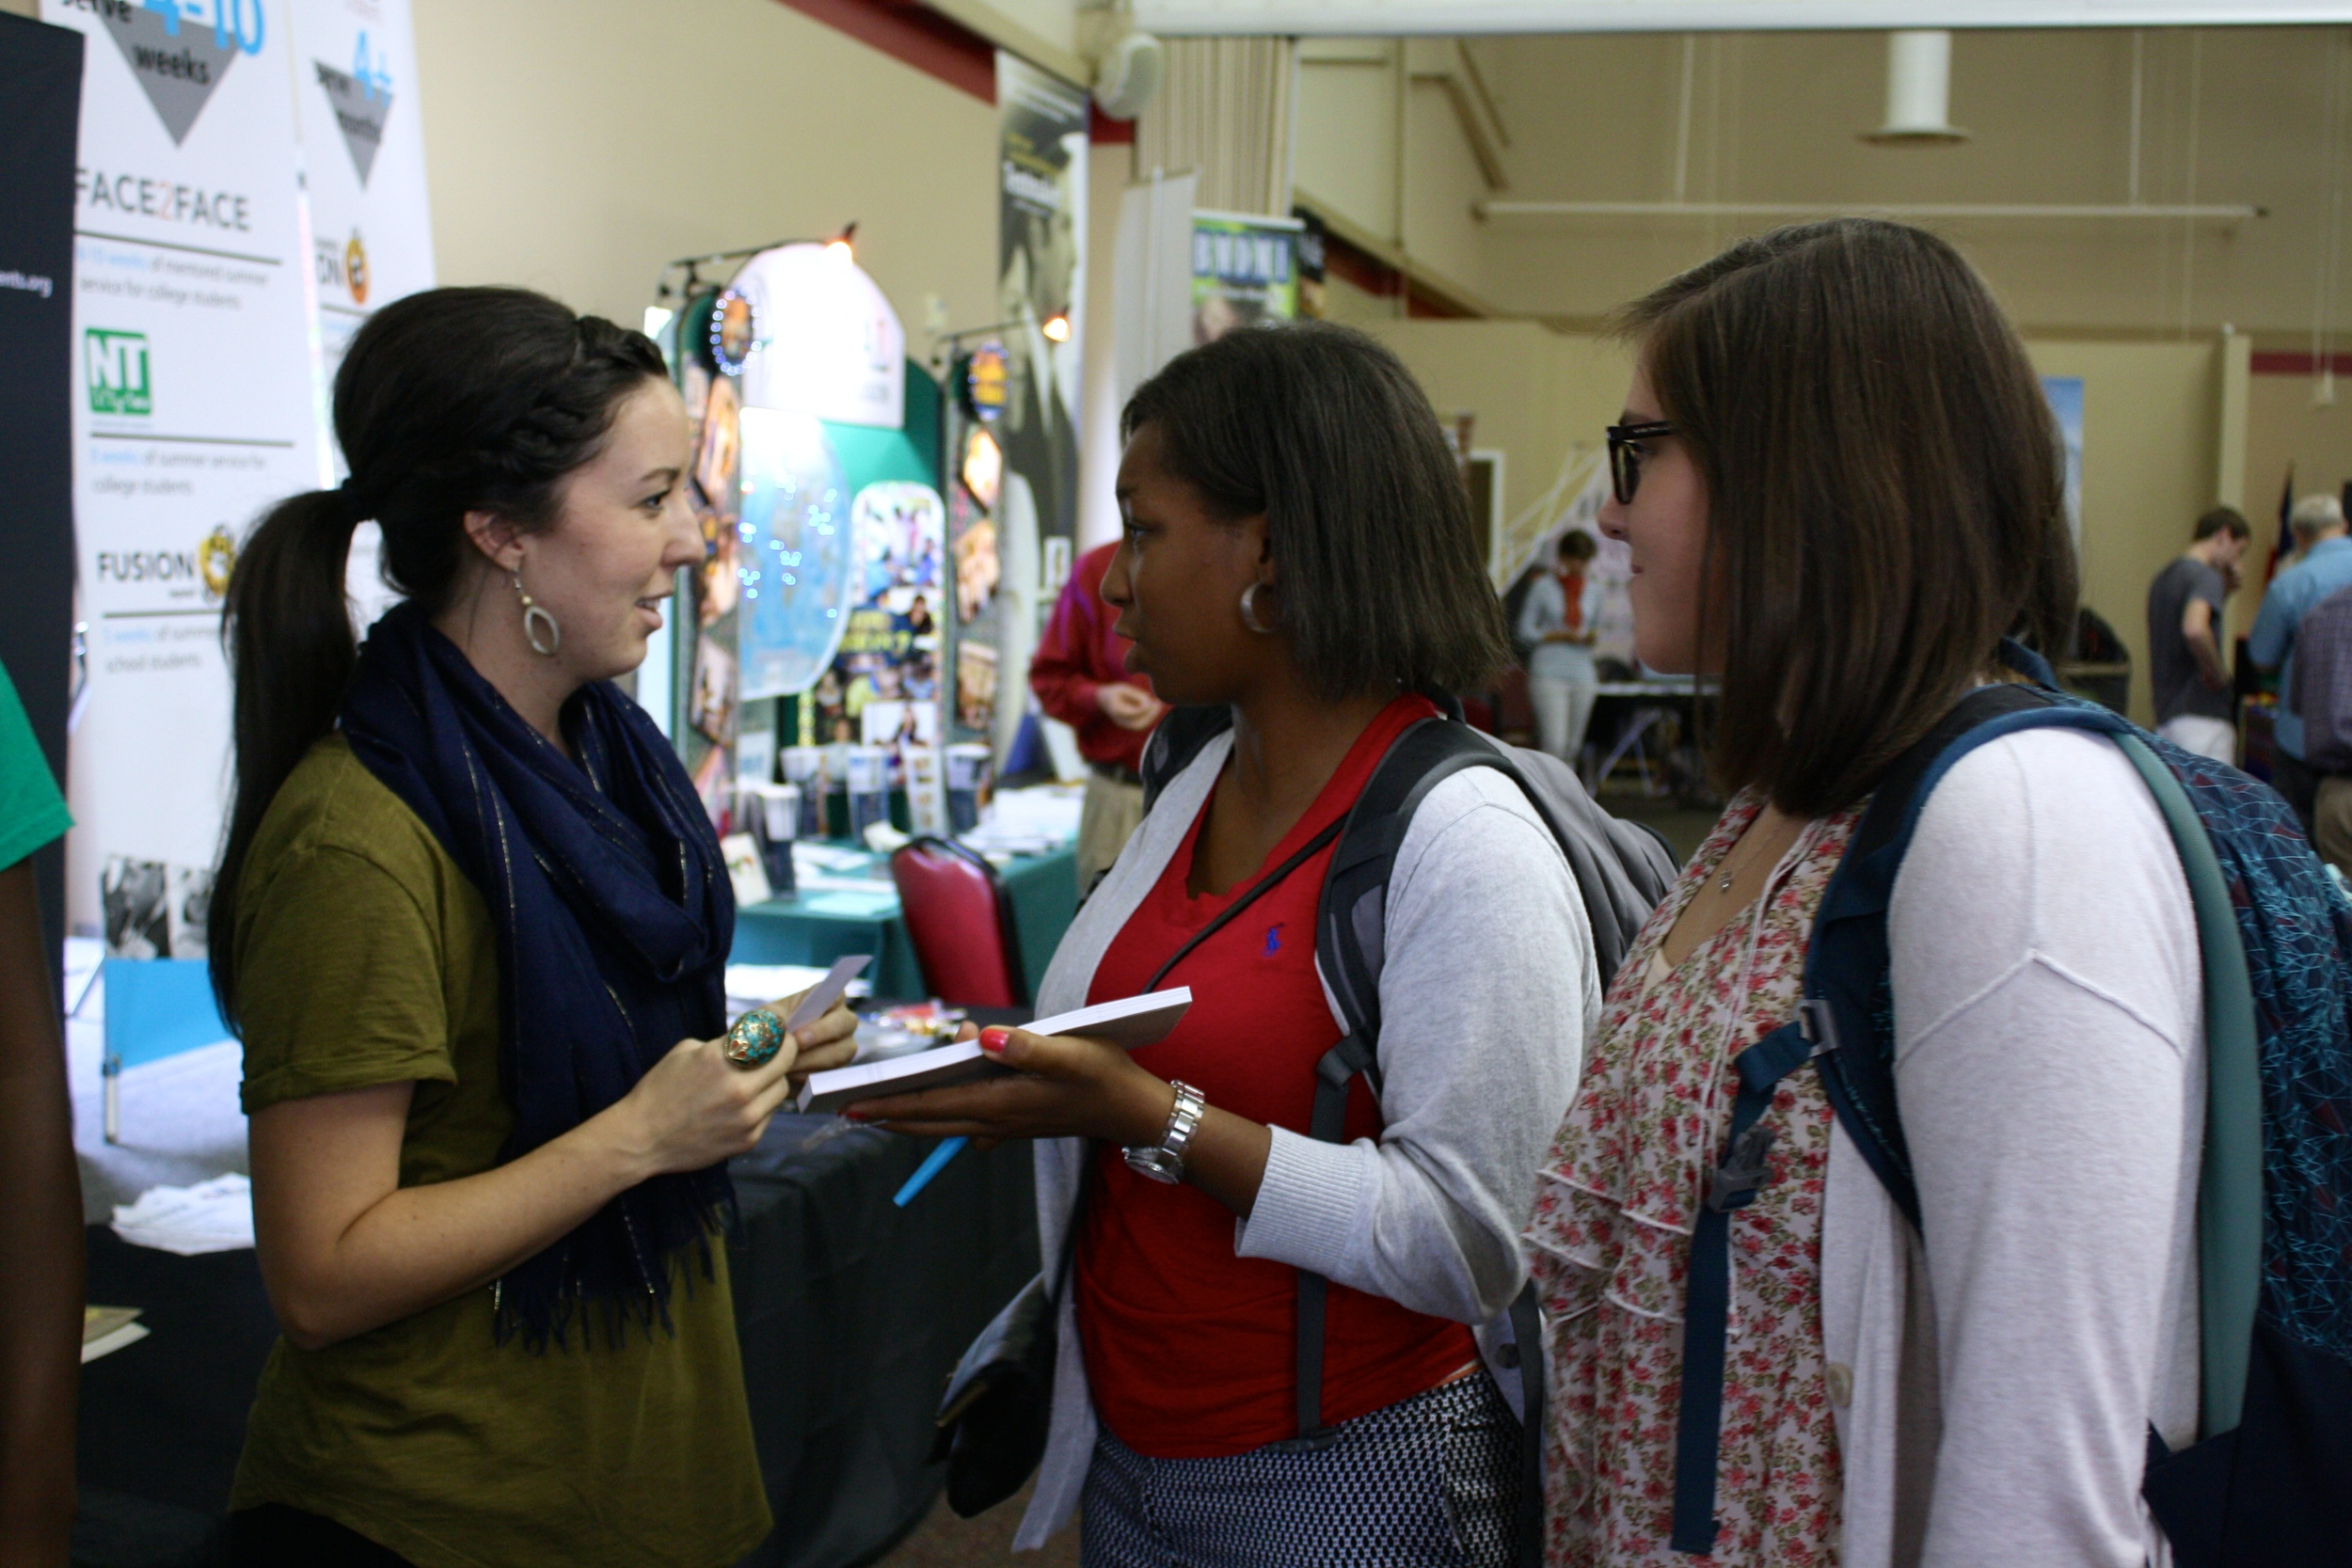 Students ask a missionary questions about the ministry she is involved in during NGU's global missions week September 8-10.